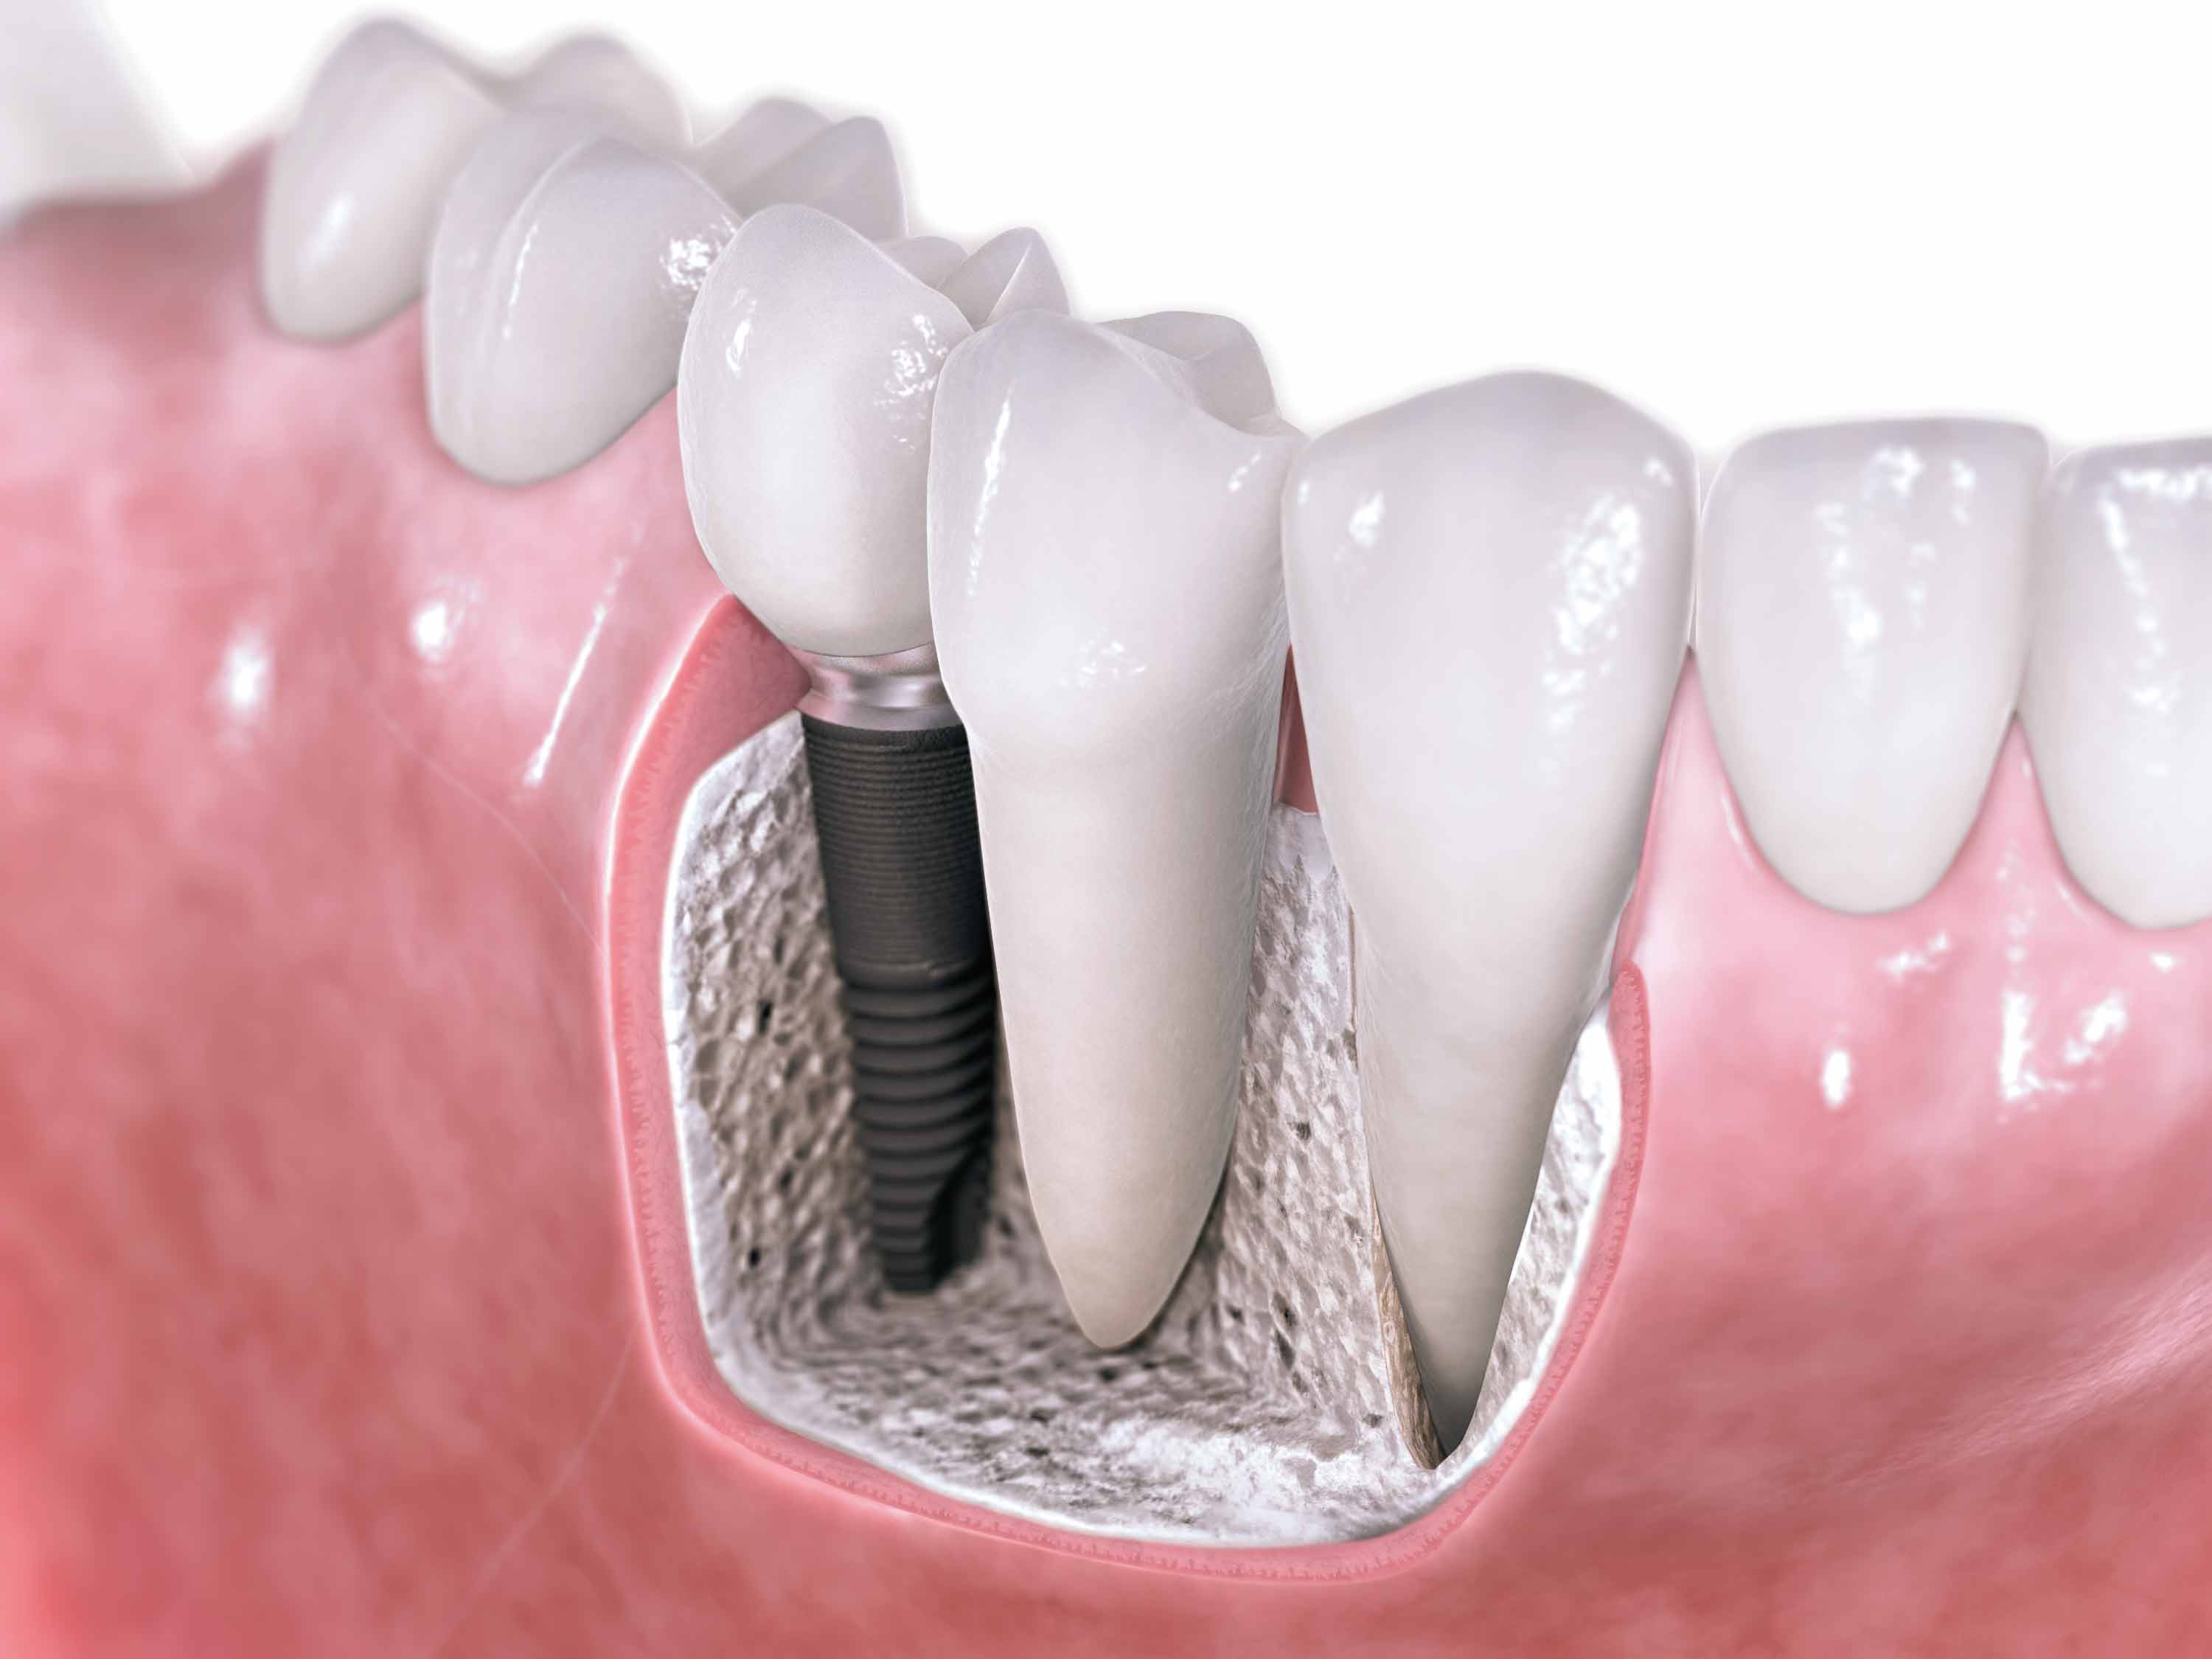 Implantes: Servicios de Clínica Dental Begoña Irigaray